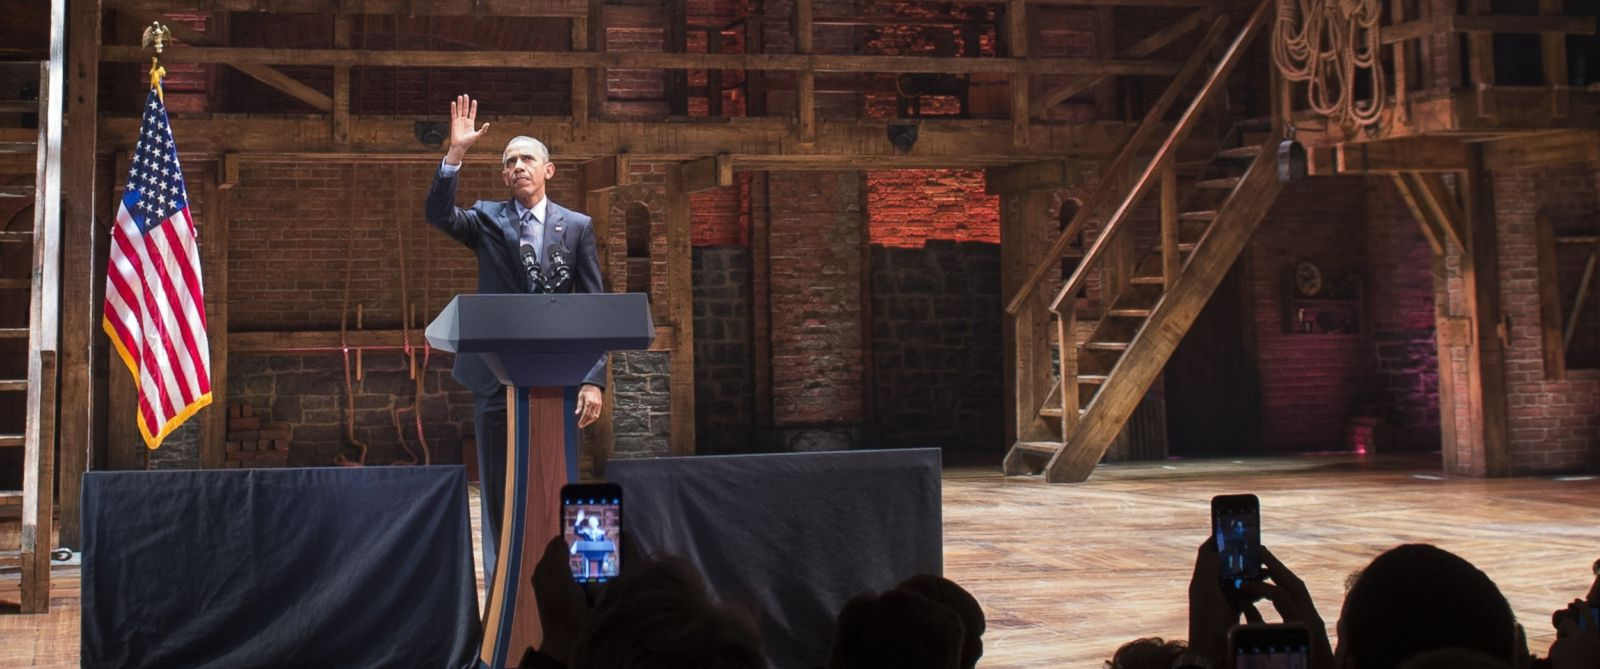 """PHOTO: President Barack Obama speaks during a Democratic fundraiser following a special performance of the Broadway show, """"Hamilton,"""" at the Richard Rodgers Theatre in New York, Nov. 2, 2015."""